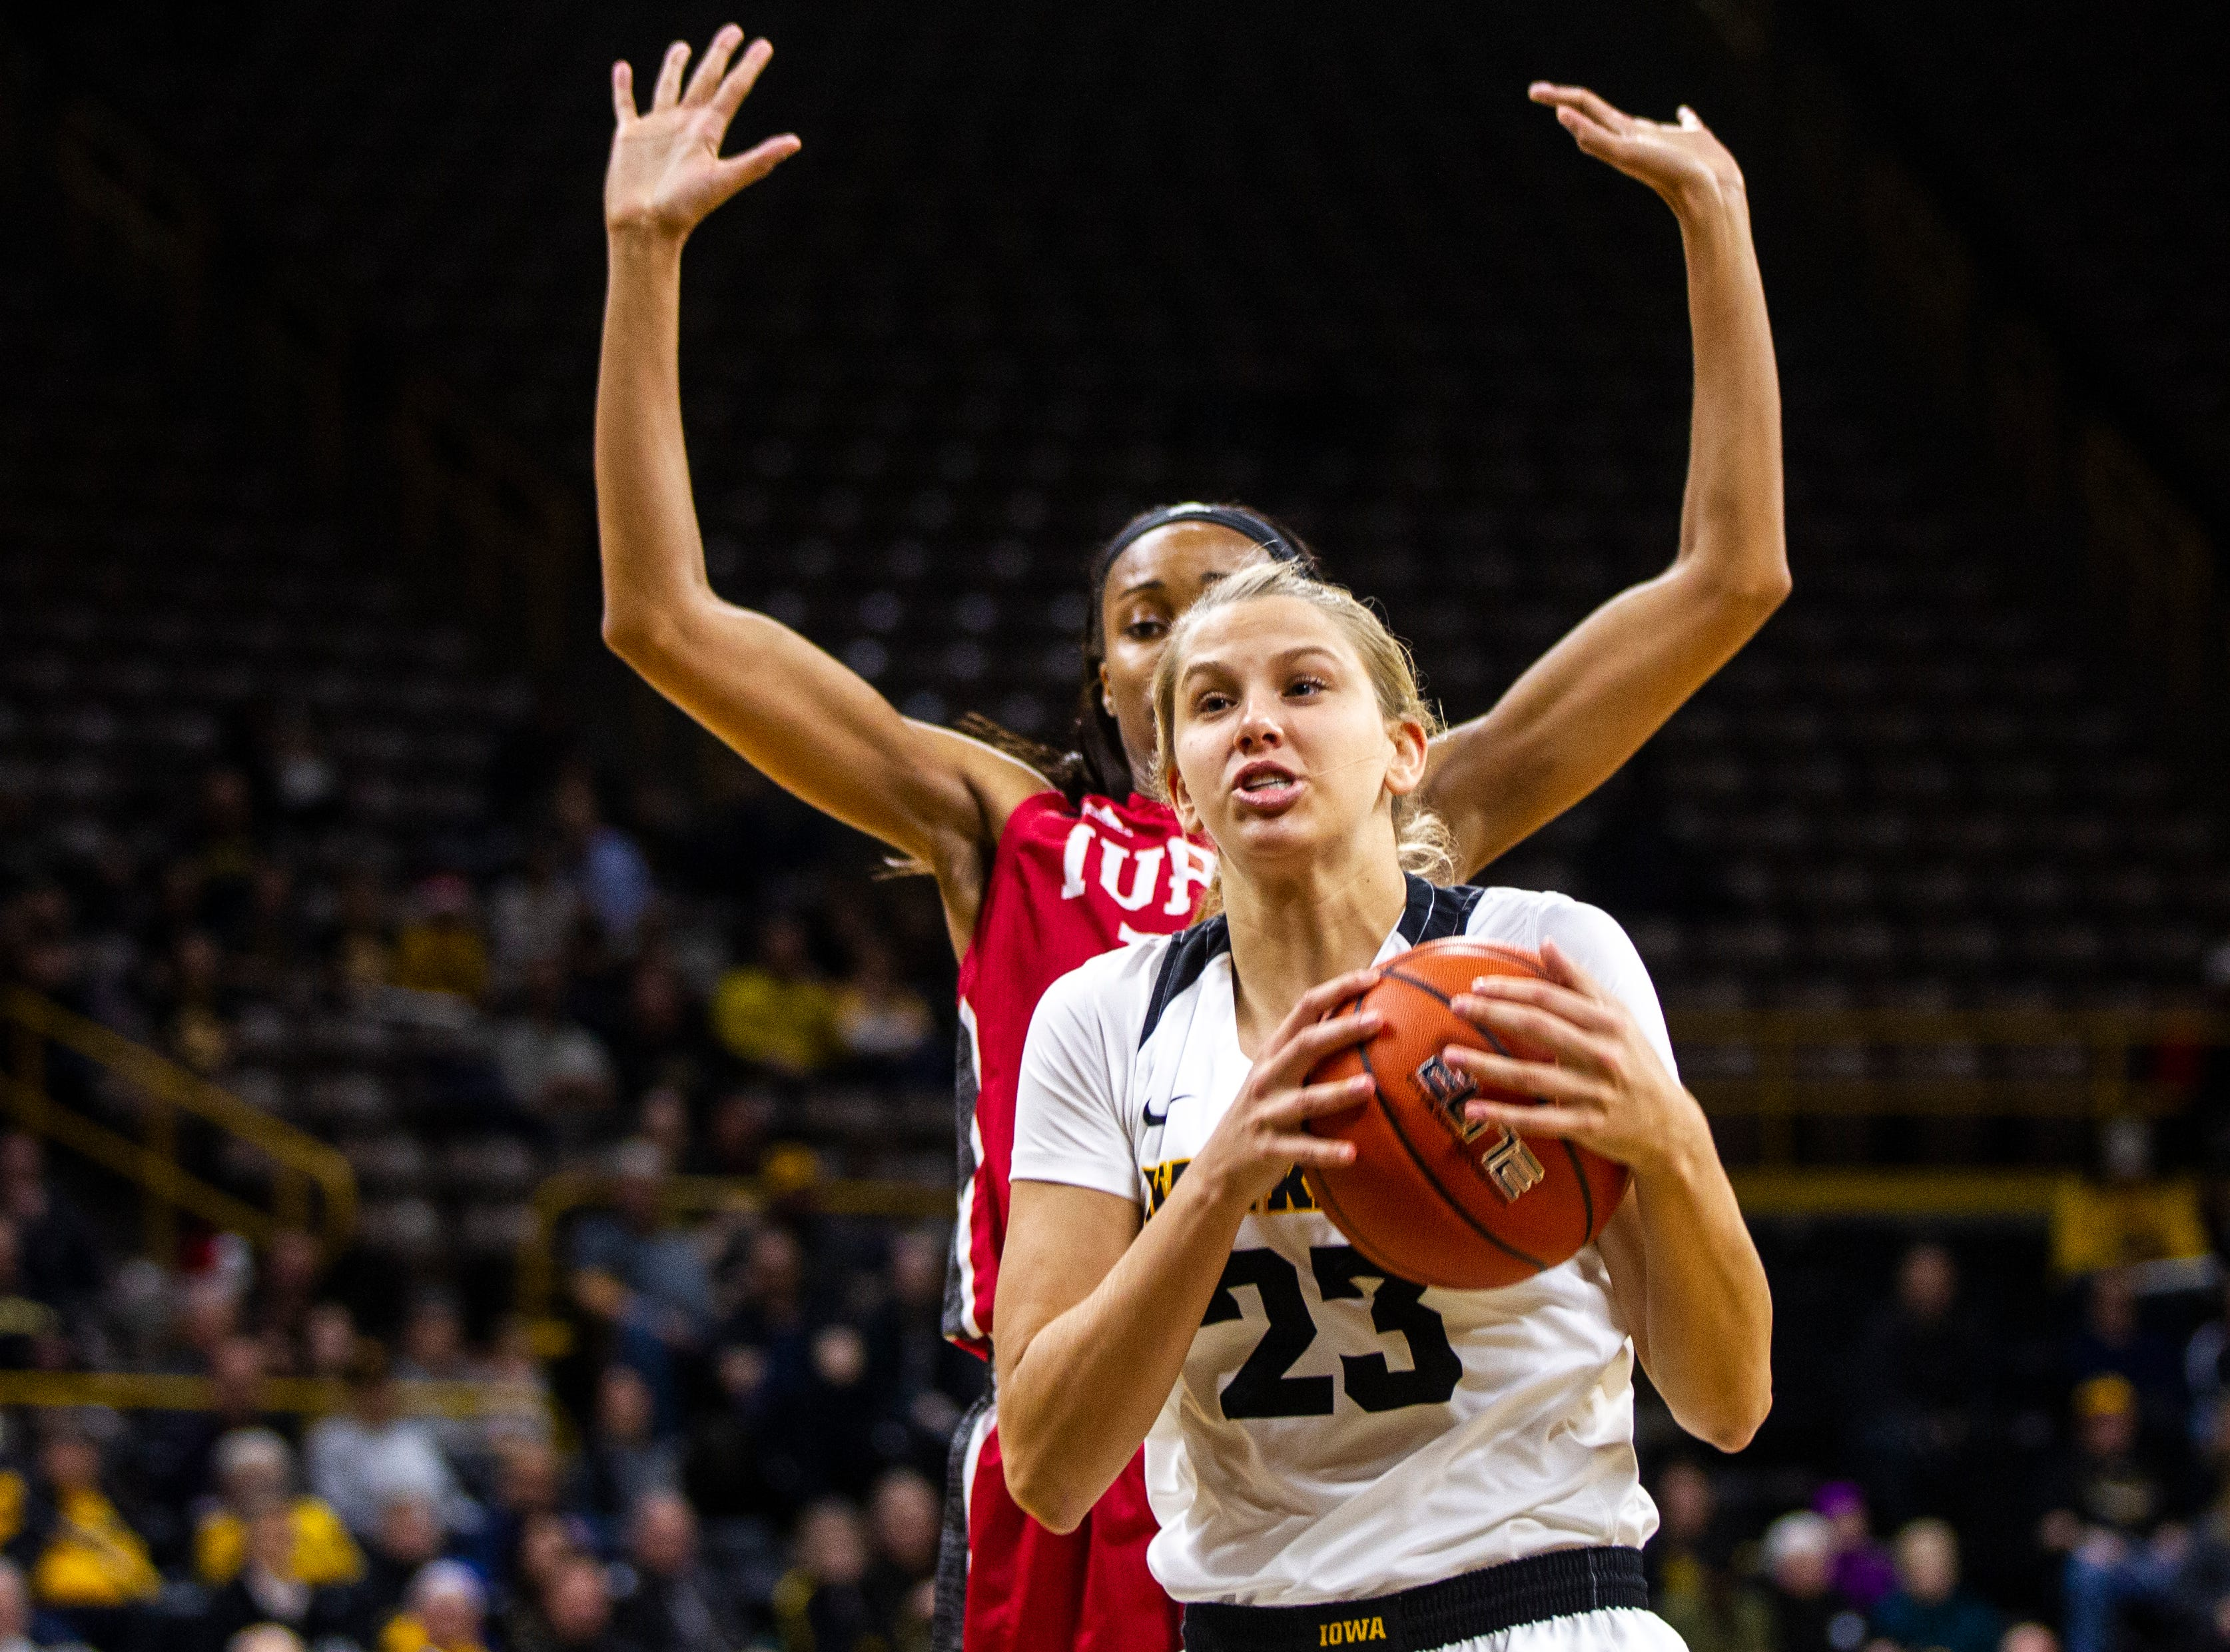 Iowa forward Logan Cook (23) gets fouled during a NCAA women's basketball game on Saturday, Dec. 8, 2018, at Carver-Hawkeye Arena in Iowa City.